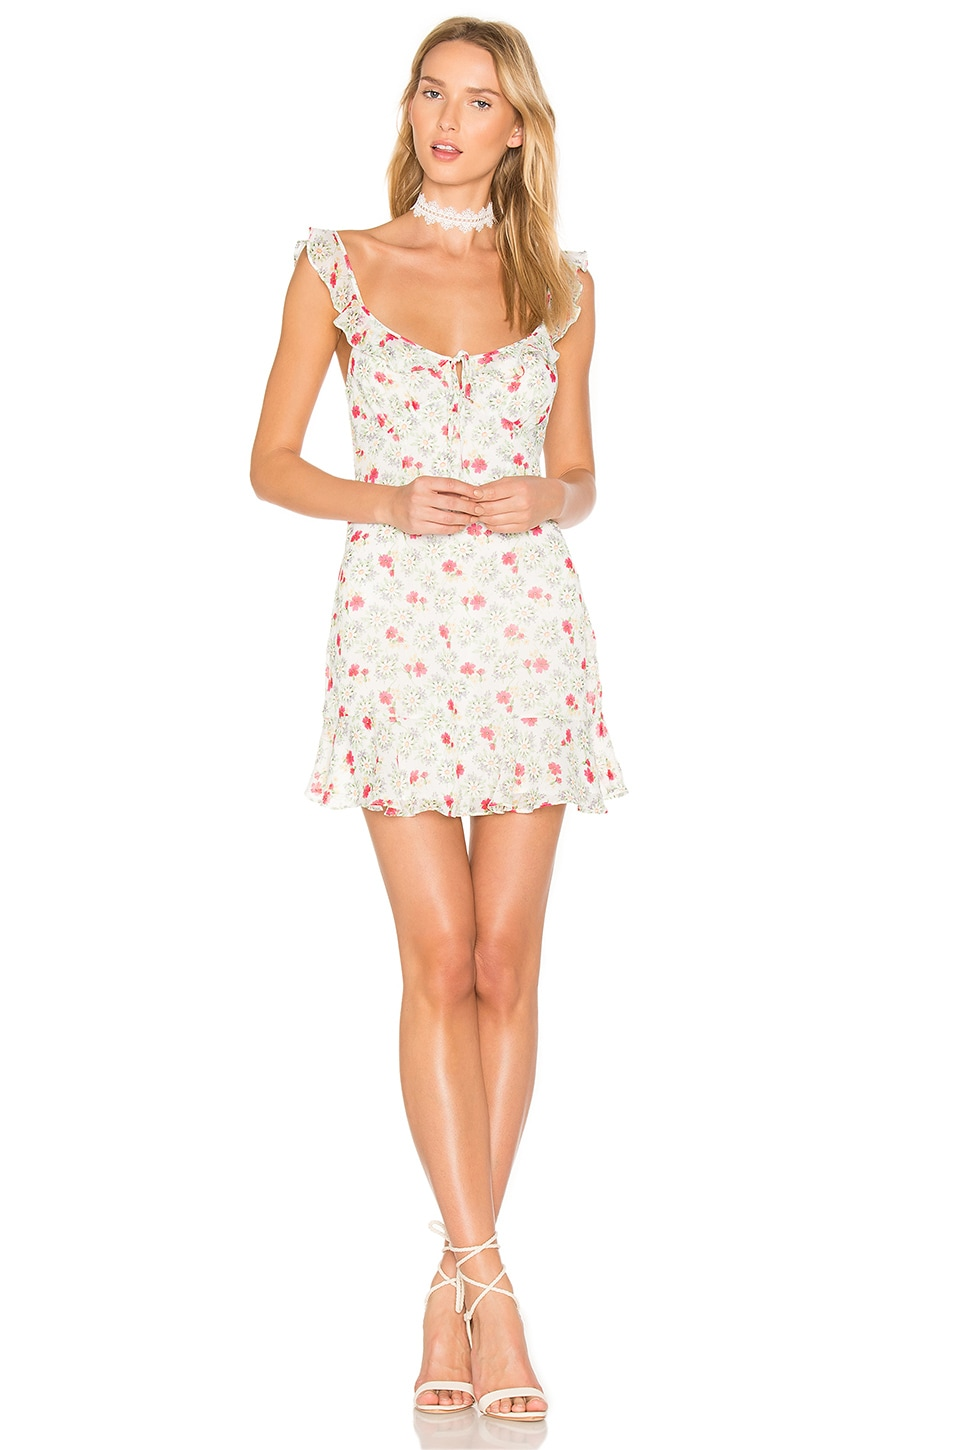 MAJORELLE Sunbeams Dress in Daisy Floral